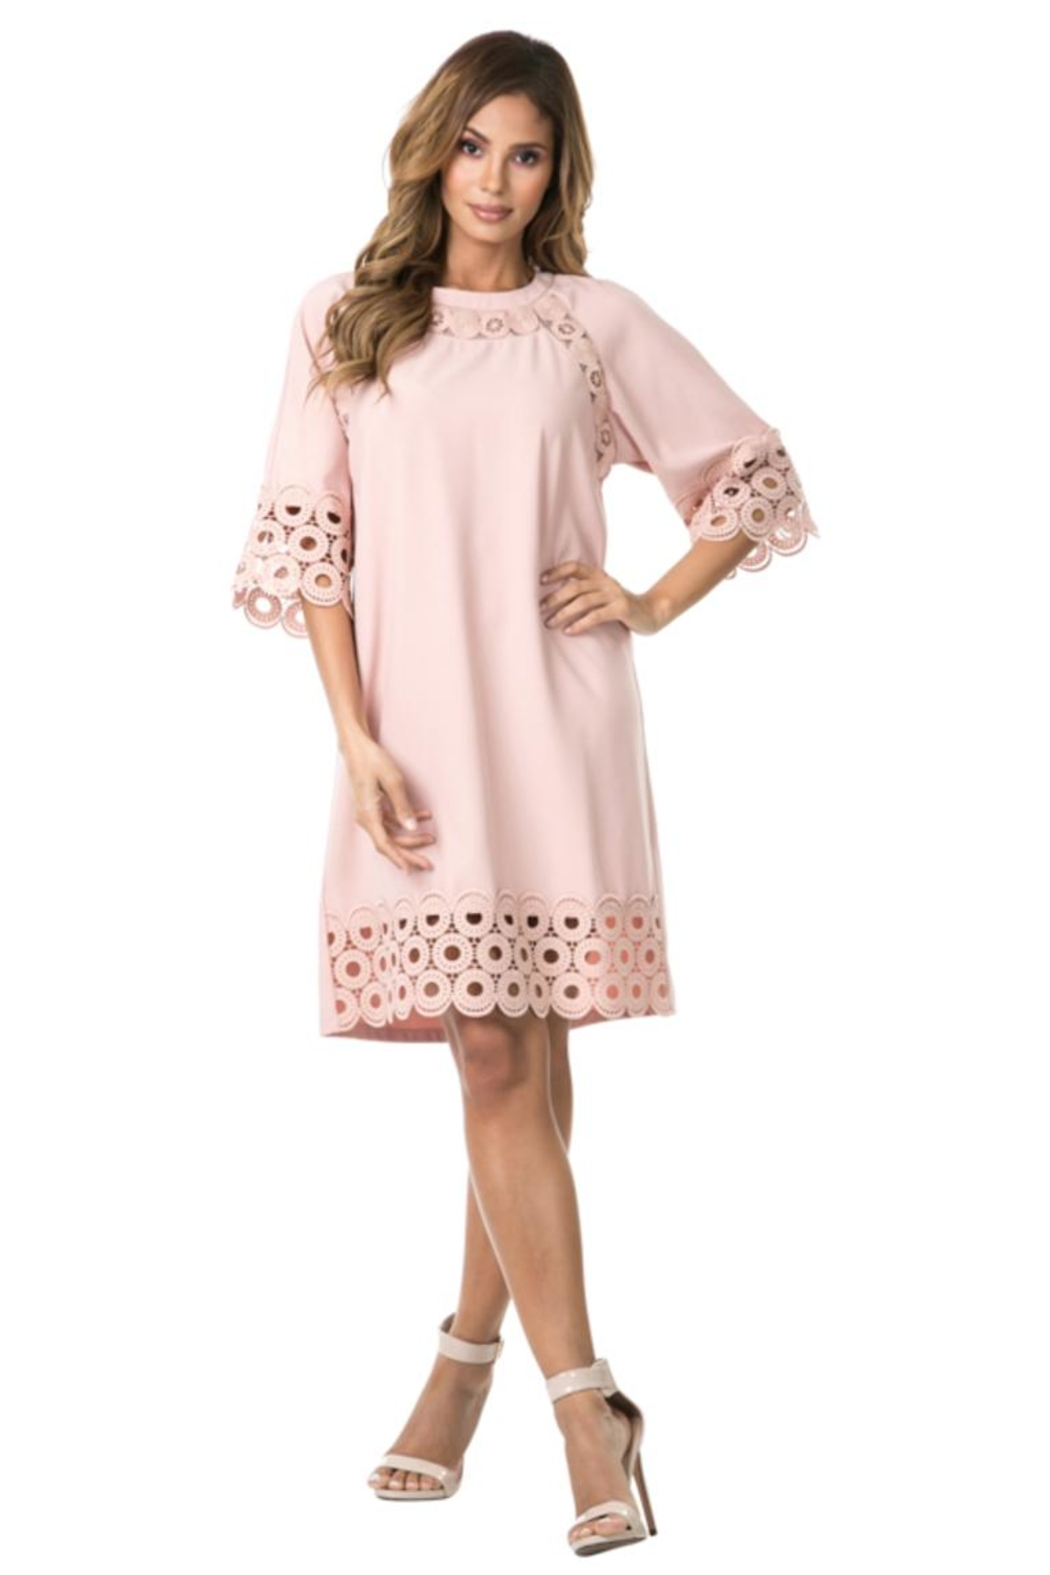 cqbycq Circled Crochet Dress - Main Image